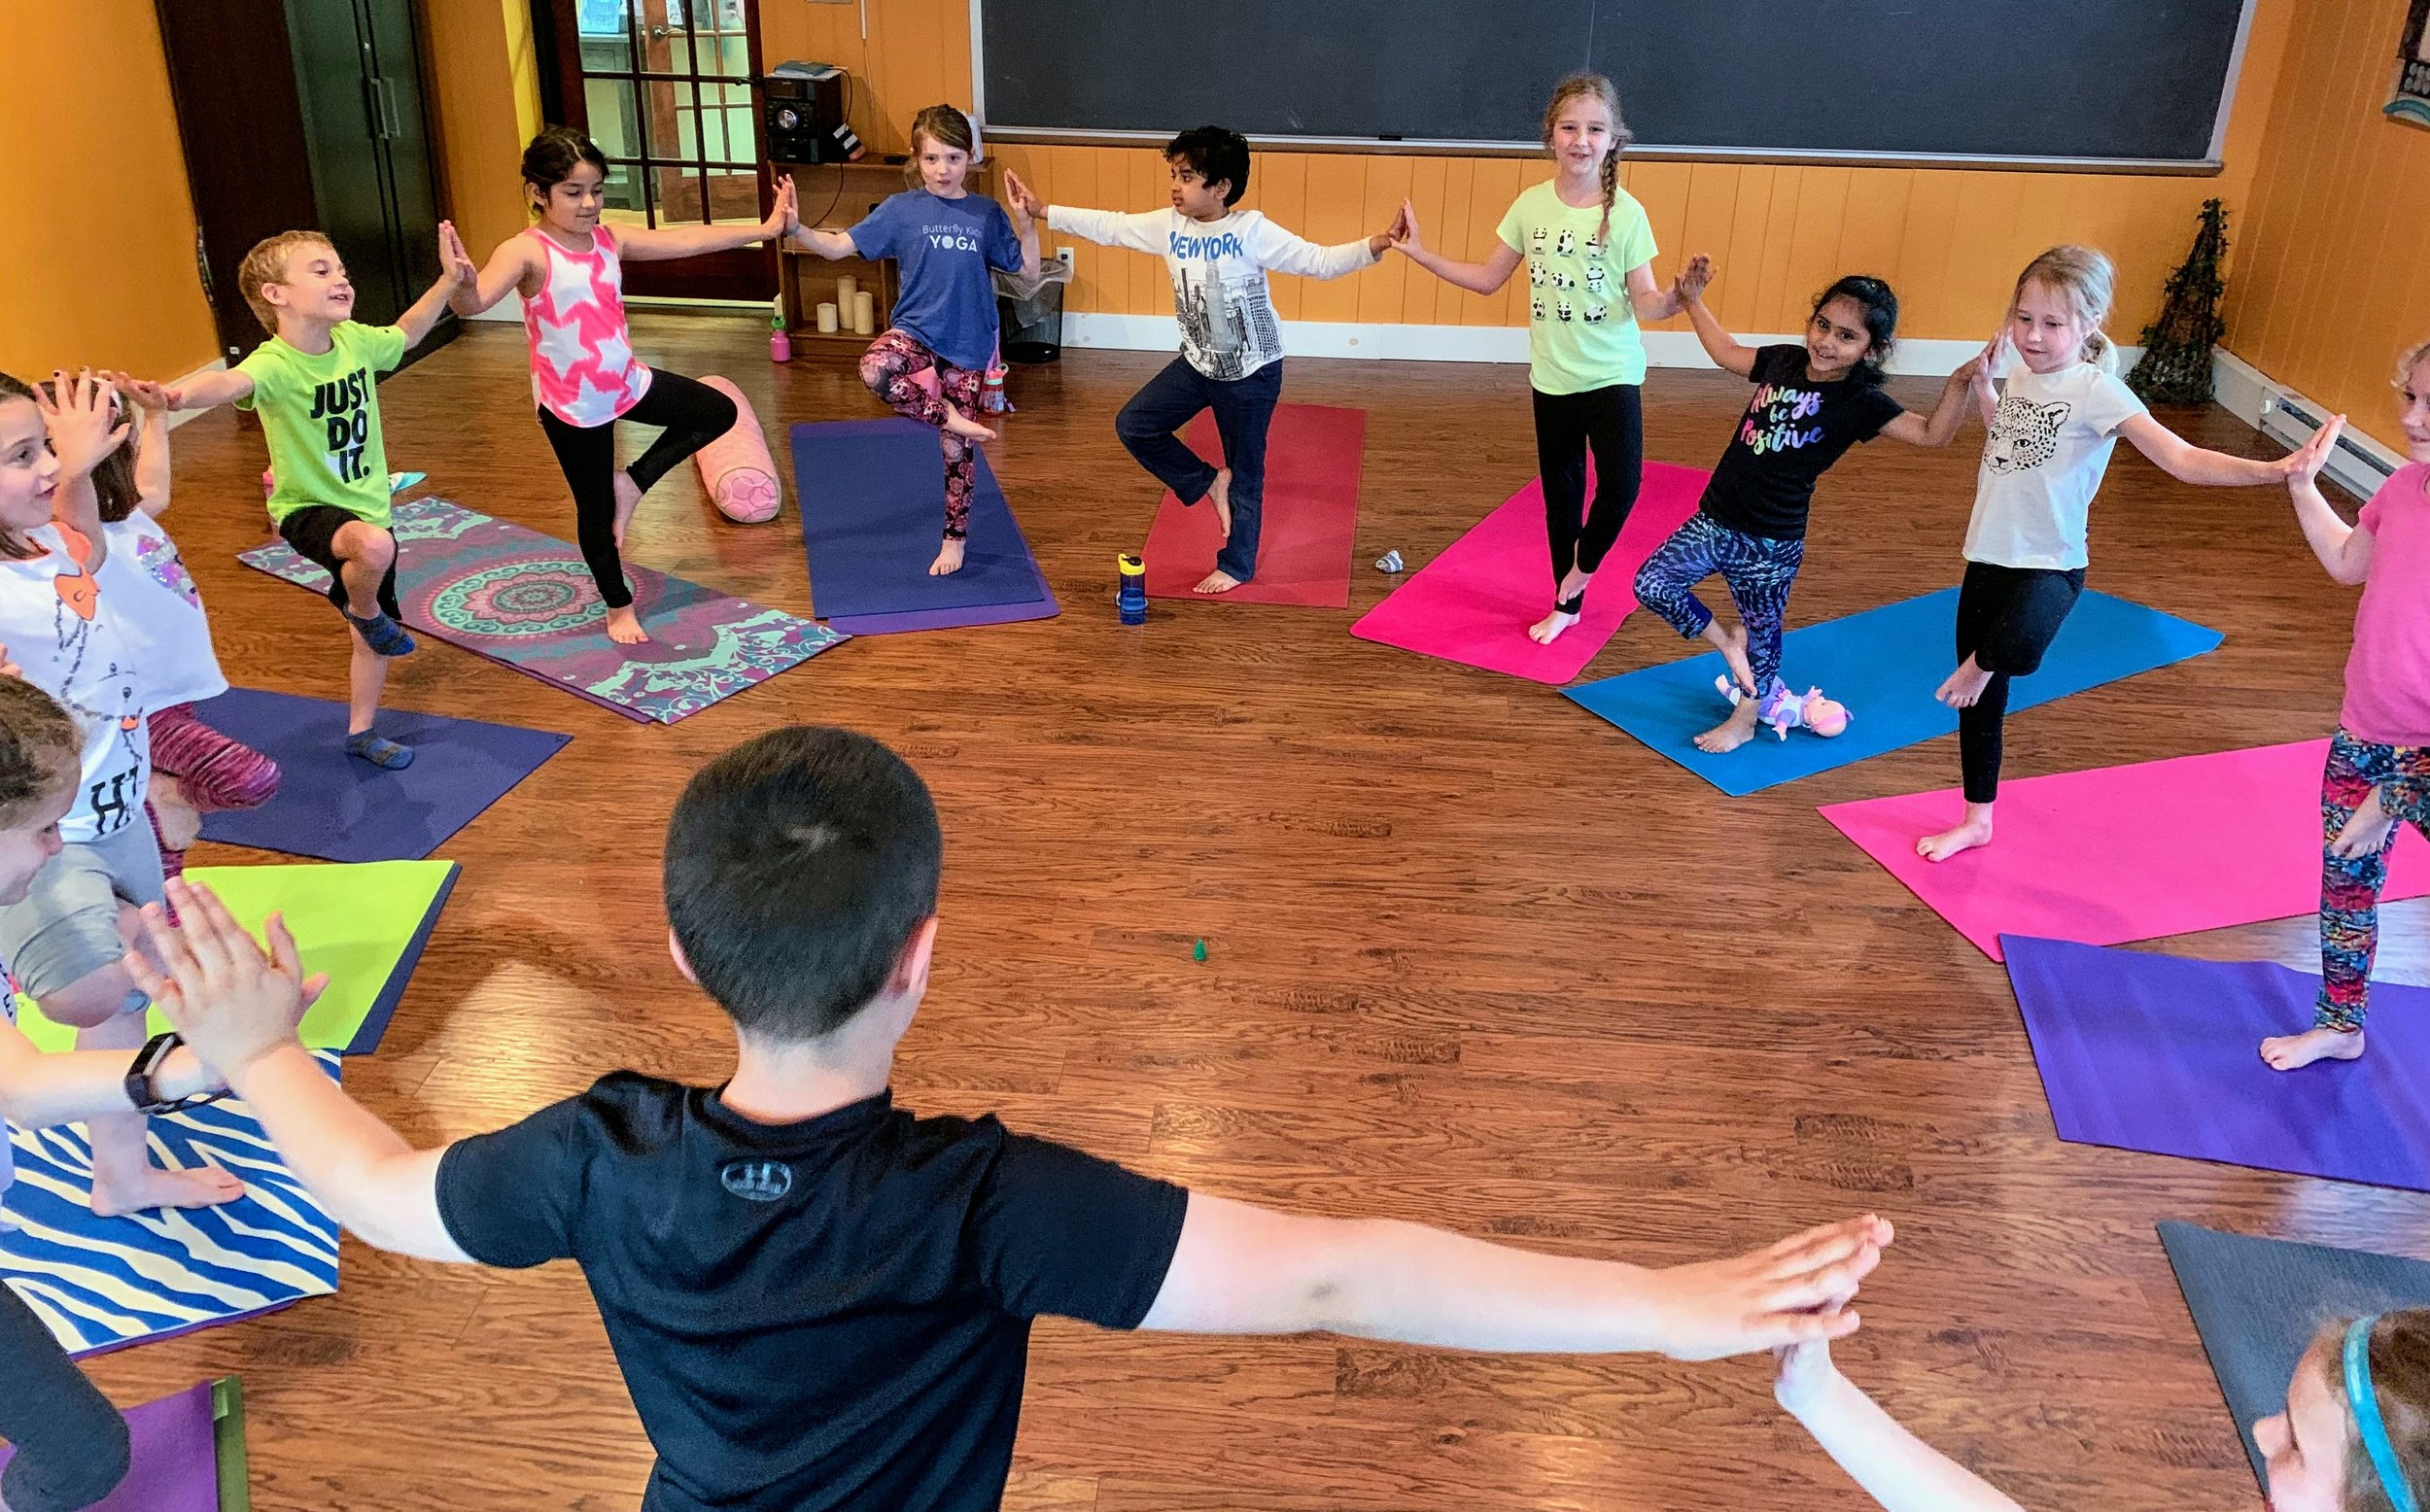 Yoga for You. Yoga for Kids . The kids class showing off great teamwork in this balance challenge. Great job!